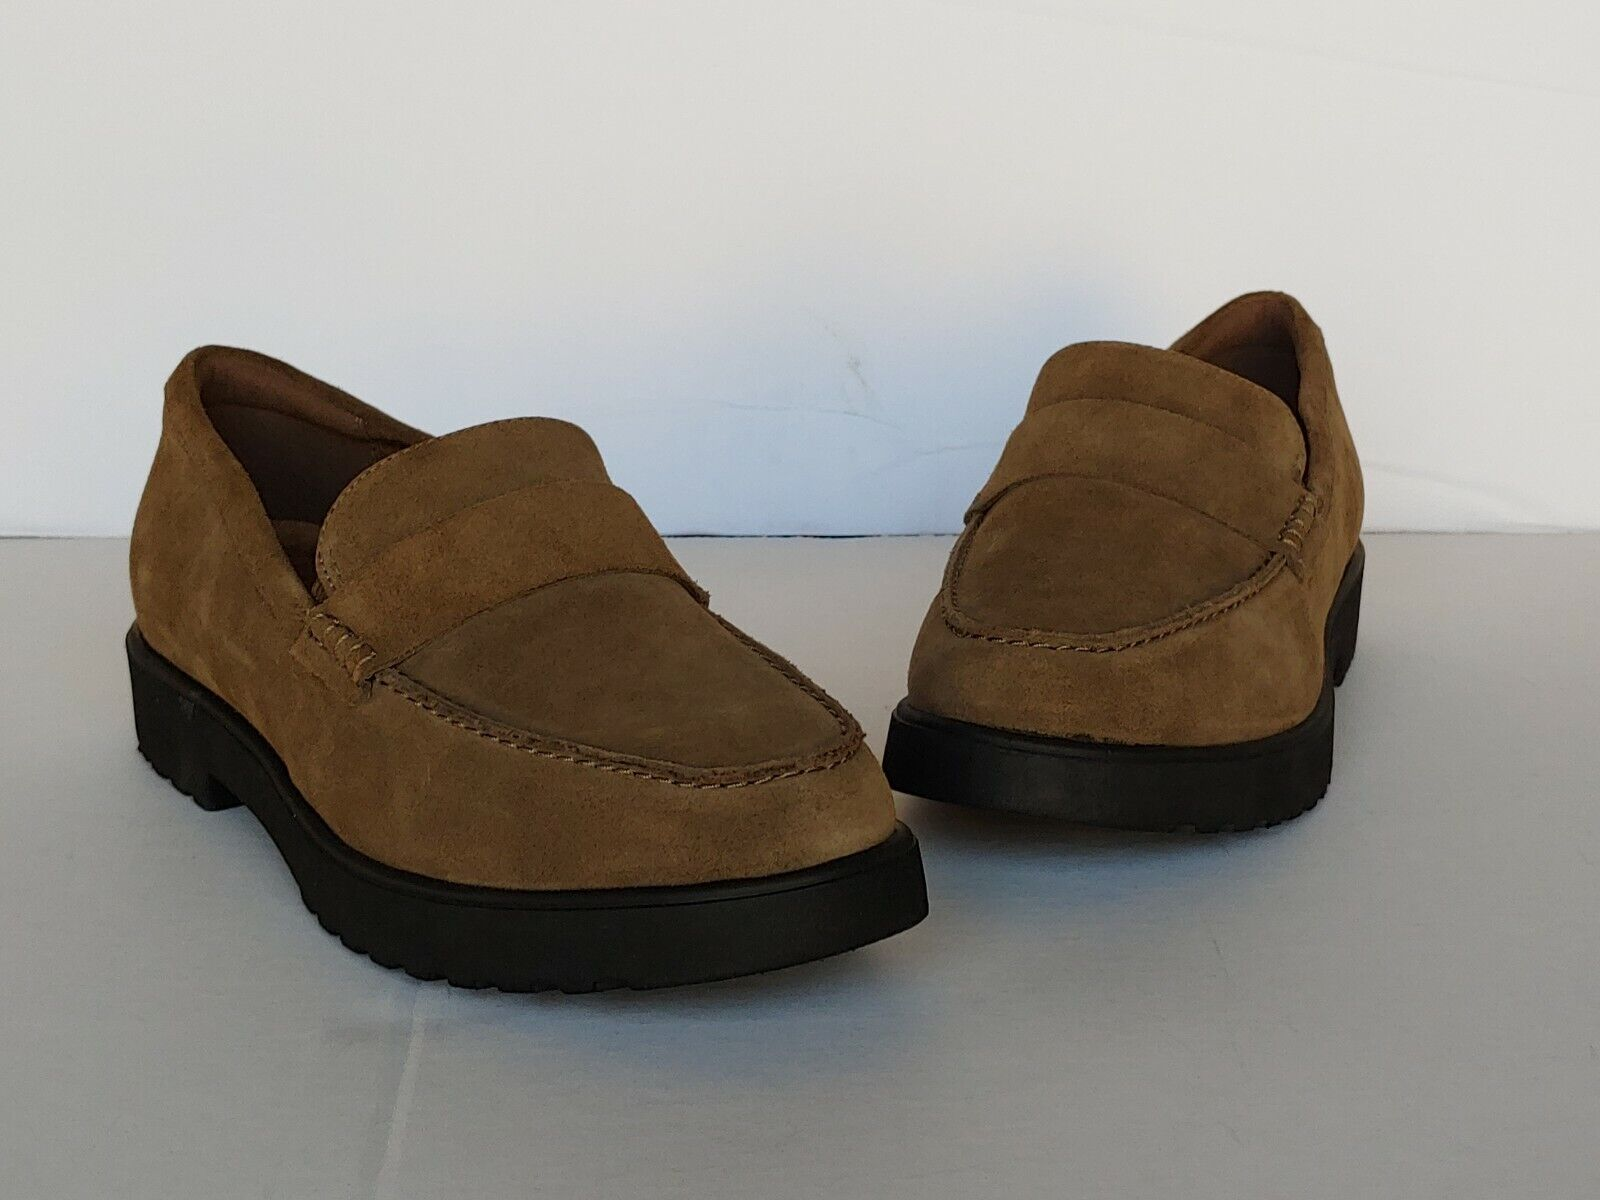 Clarks Artisan Suede Cleated Loafers - Bellevue Hazen Olive Wouomo Dimensione 8 New